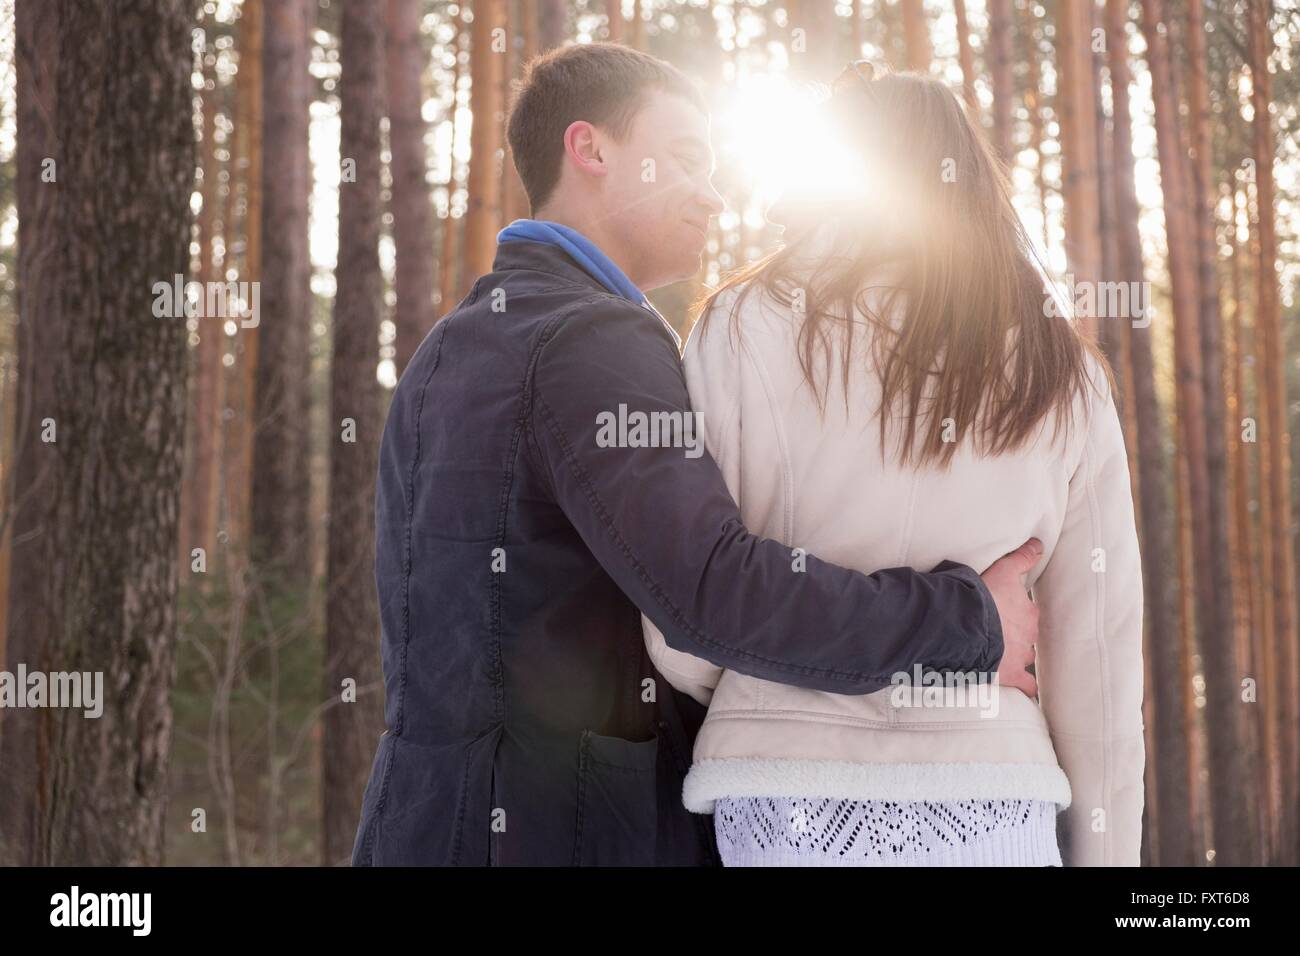 Young man guiding woman in forest - Stock Image